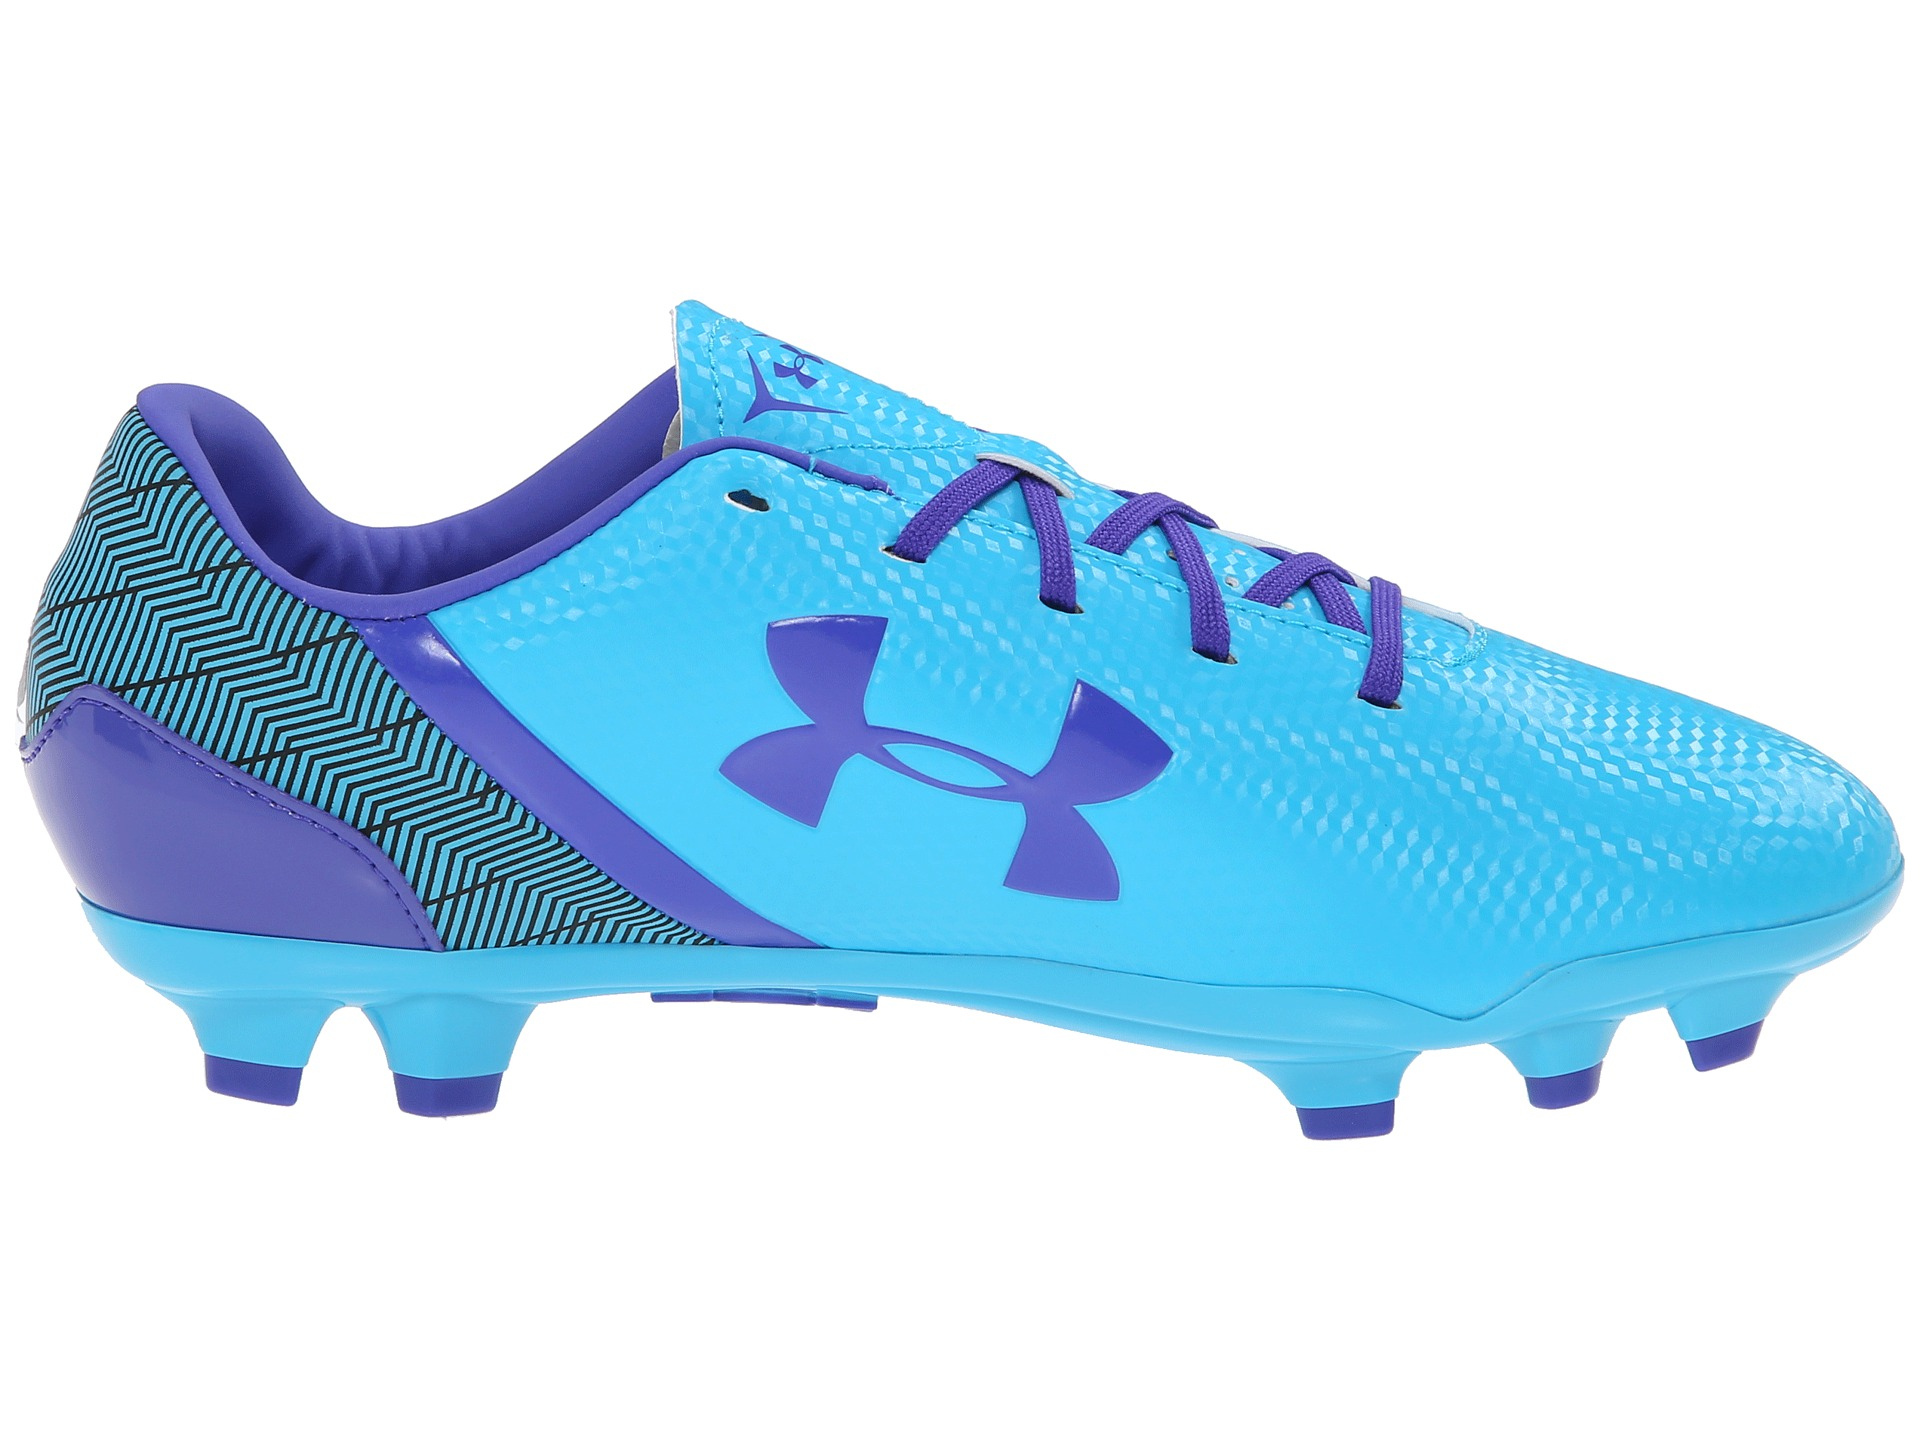 Lyst - Under Armour Ua Sf Flash Fg in Blue a9c0466e59ce0